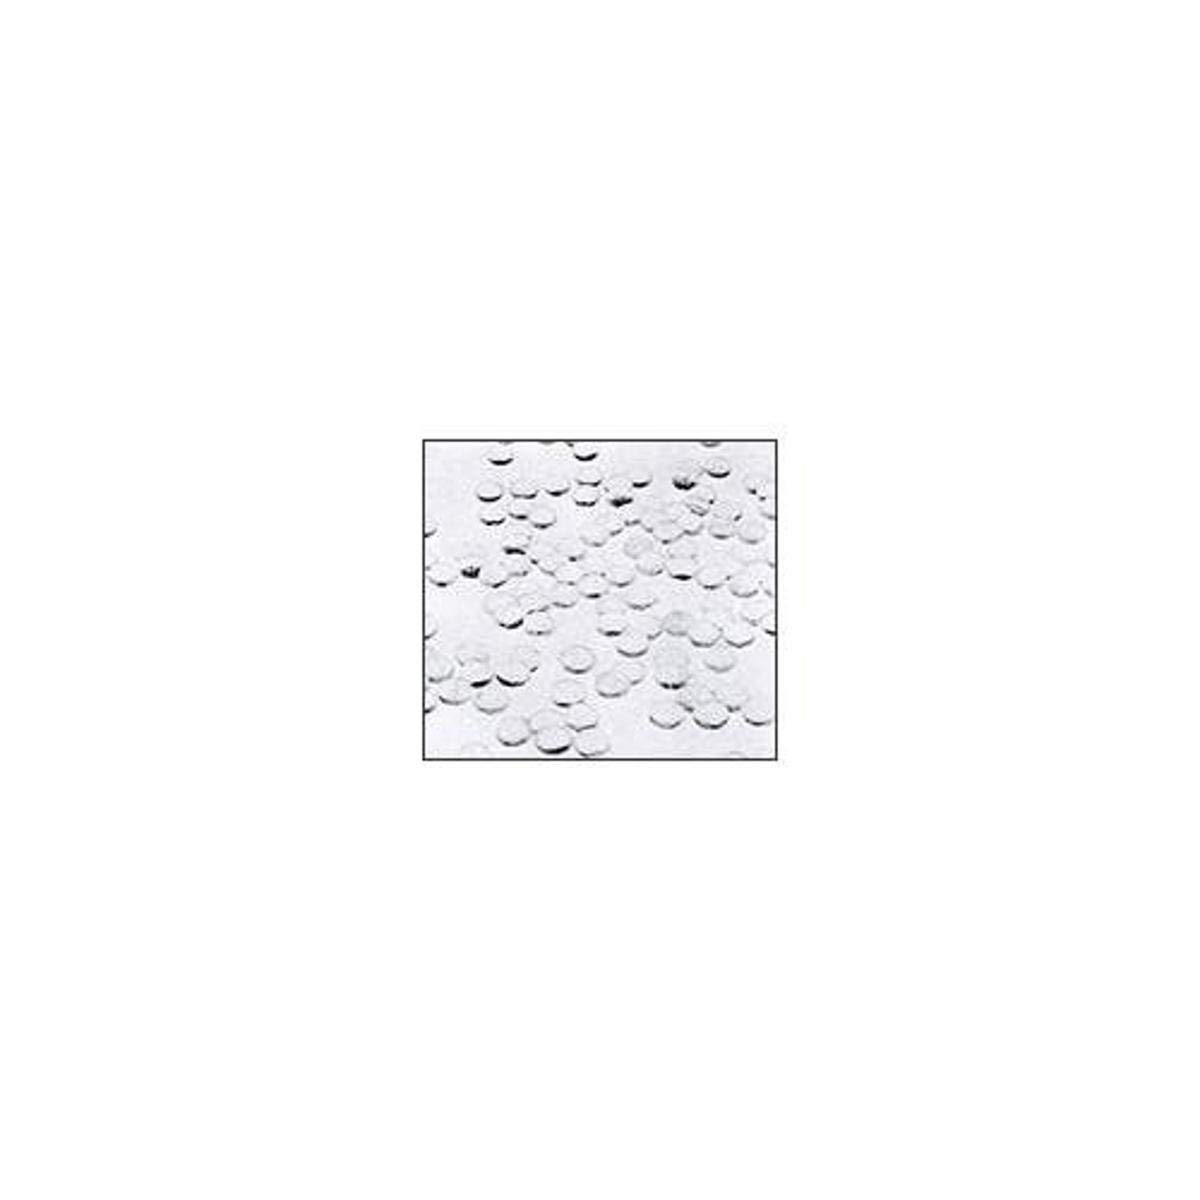 Walter Stern 100 F mm Glass 5 High order Max 70% OFF Beads